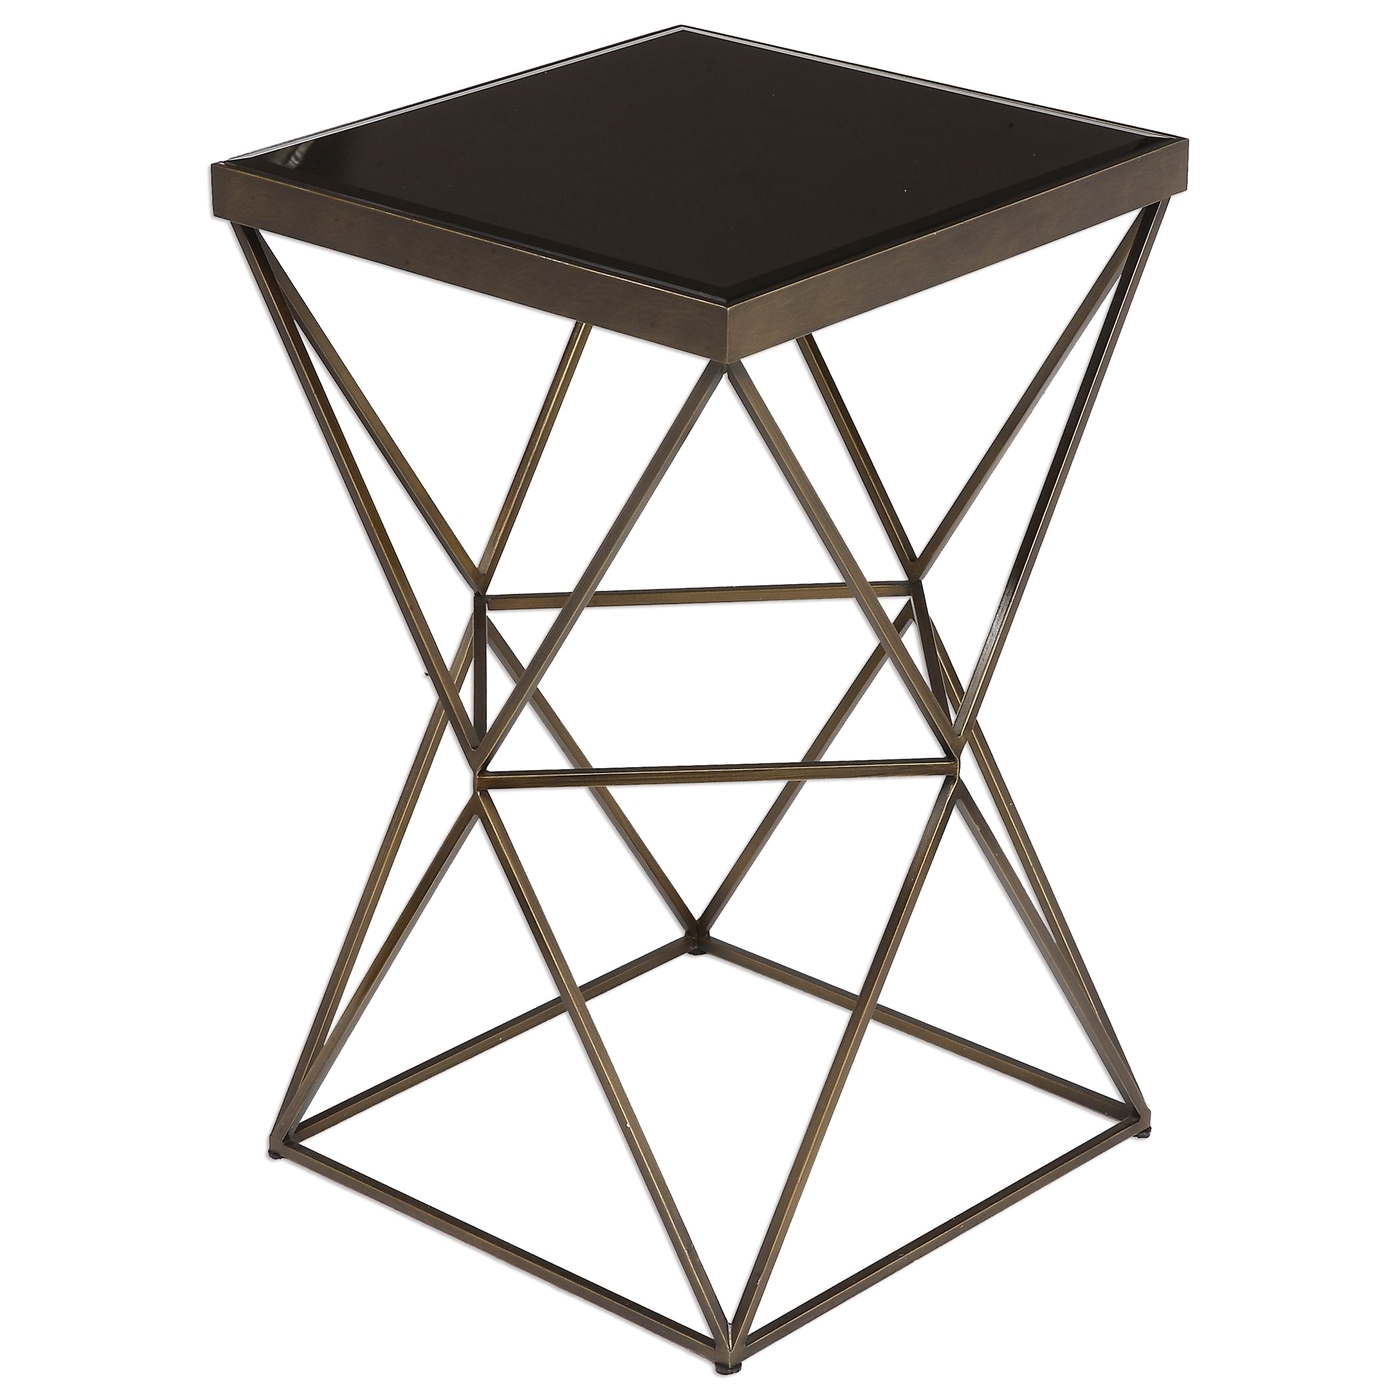 uberto caged frame accent table antique bronze finish steel antiqued with cage and beveled black glass top loading danish mid century modern dining chairs vacuum room essentials